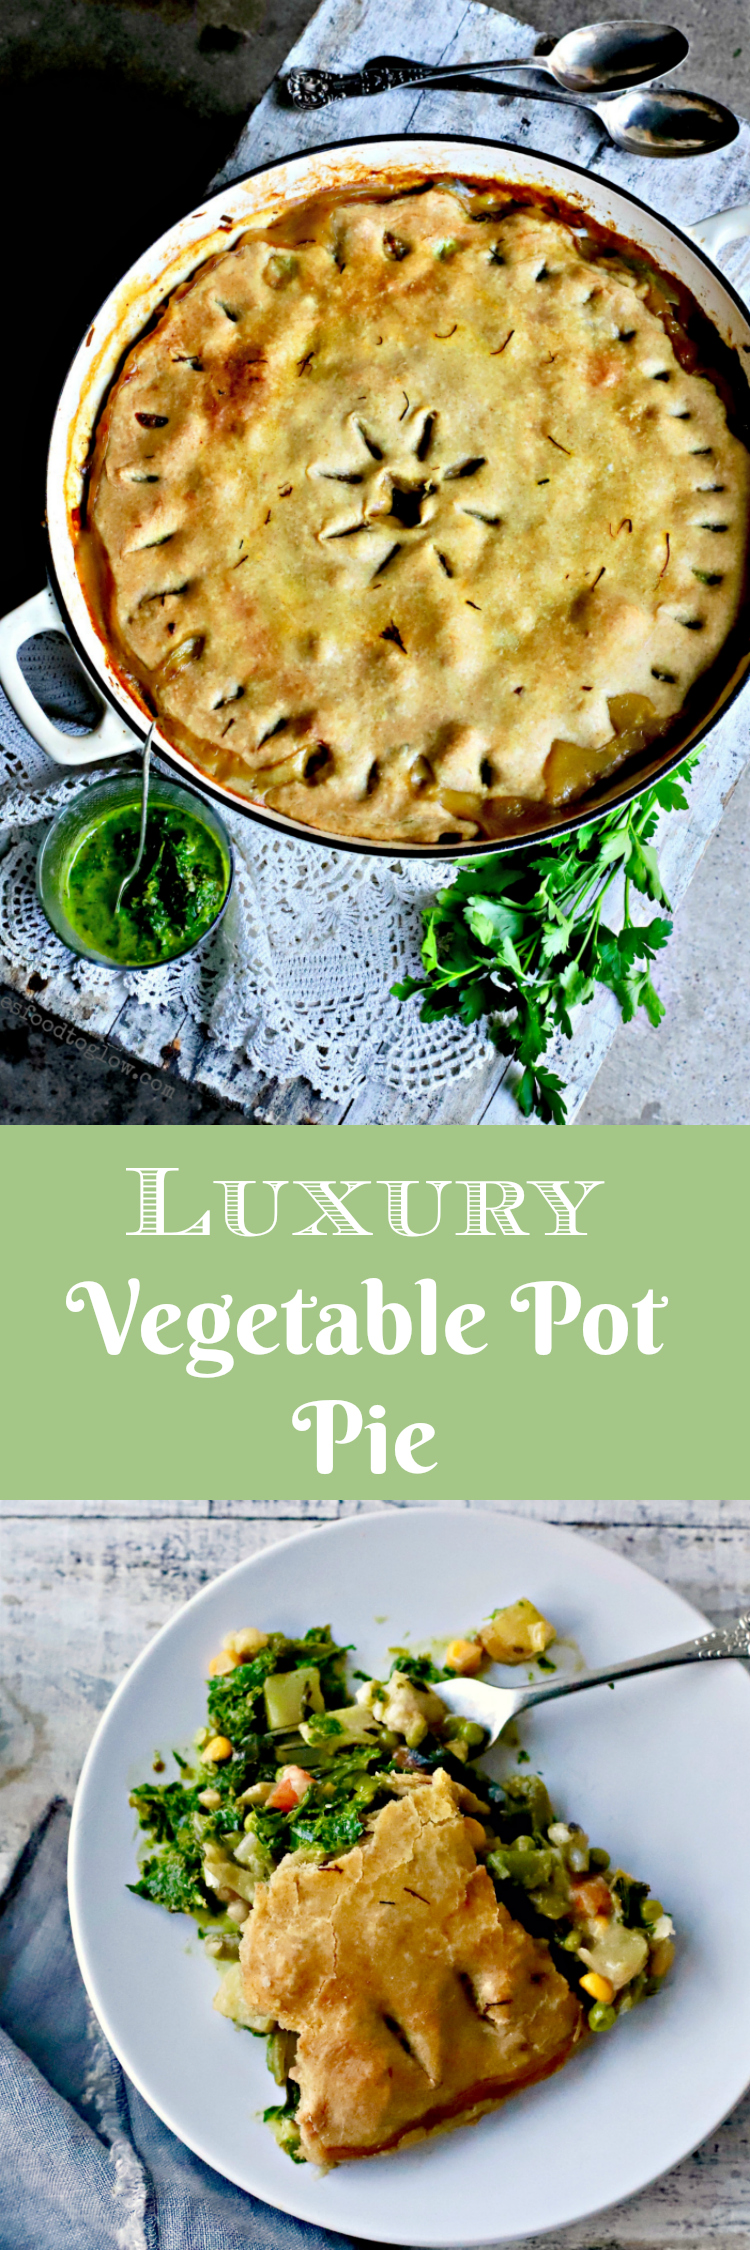 Vegetable pot pie gone a bit fancy with saffron, porcini mushrooms and an olive oil crust. This #vegan, weekend family #food #recipe will remind you of pot pies of yore, but without the saturated fat. #potpie #familyrecipe #vegetables